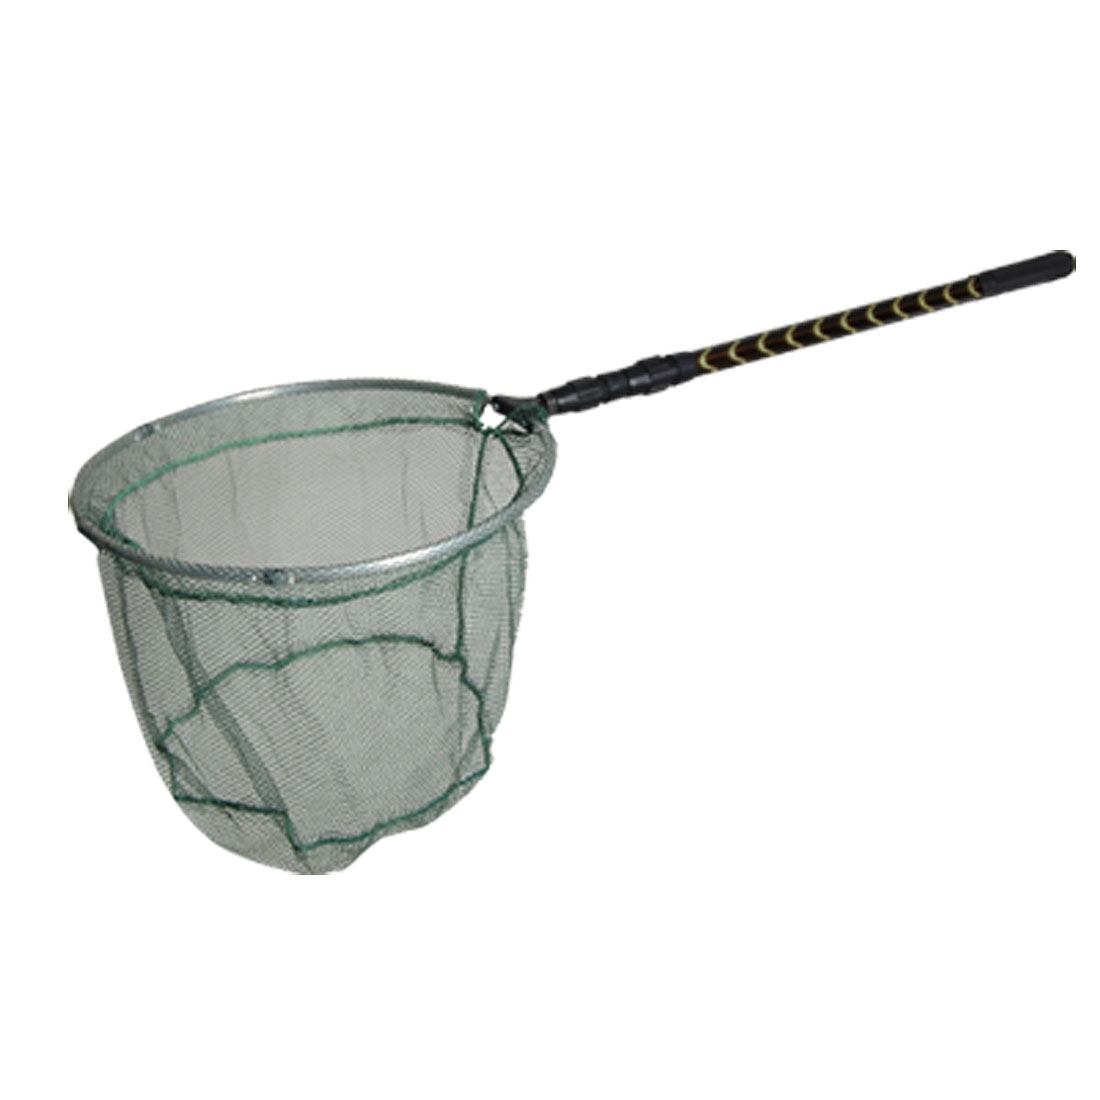 Rubber Coated Telescopic Handle 3 Sections Fishing Tackle Landing Net